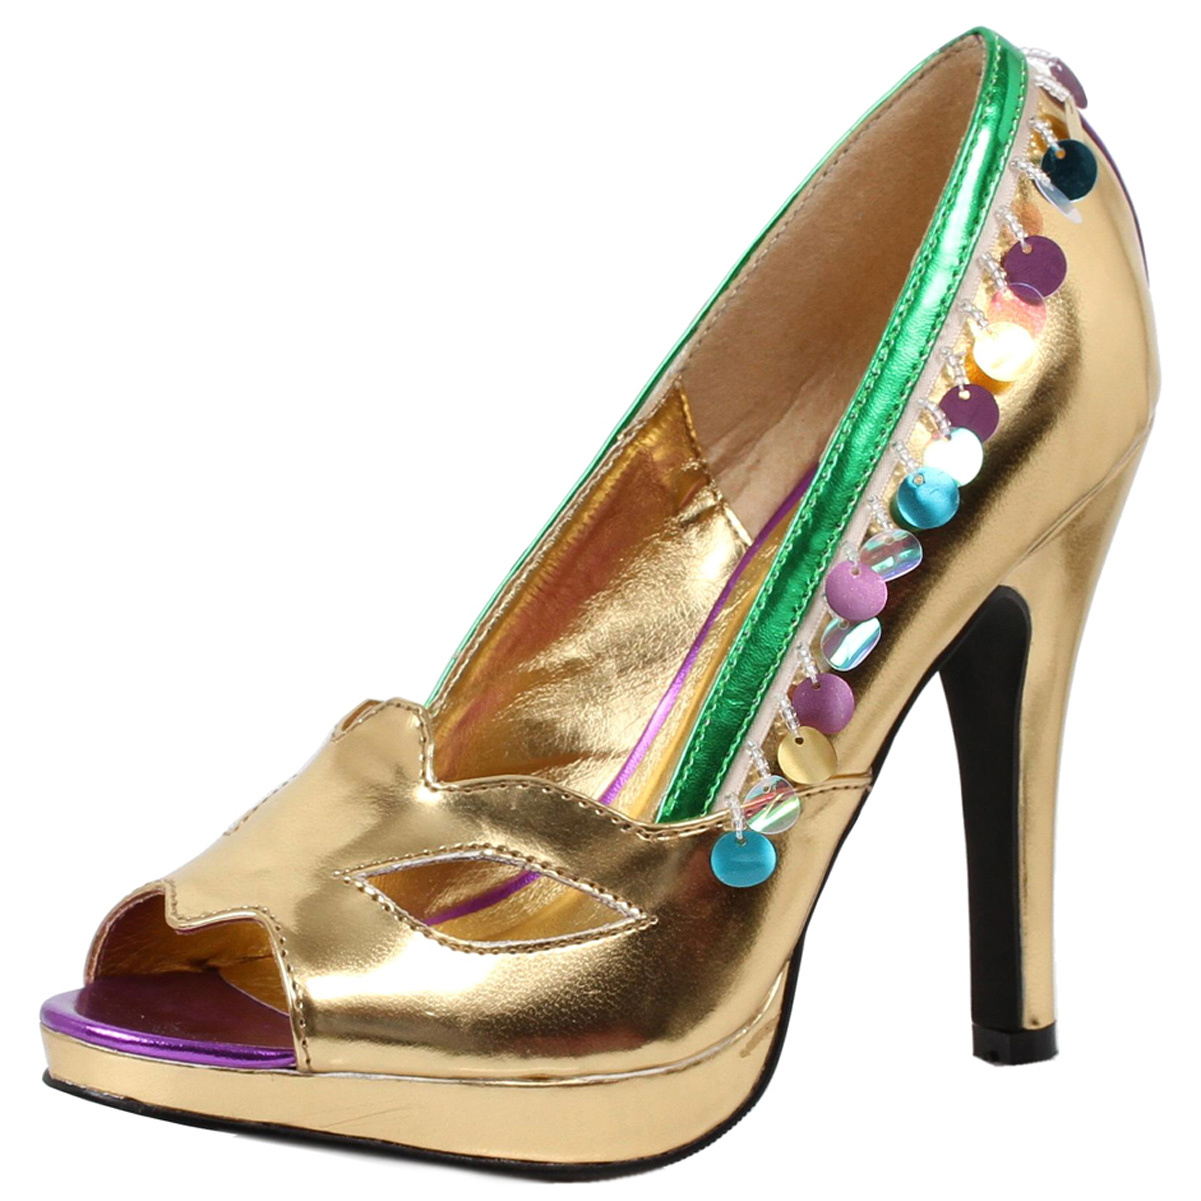 Womens Gold Peep Toe Pumps Green Trim Masquerade Costume Shoes 4 Inch Heels